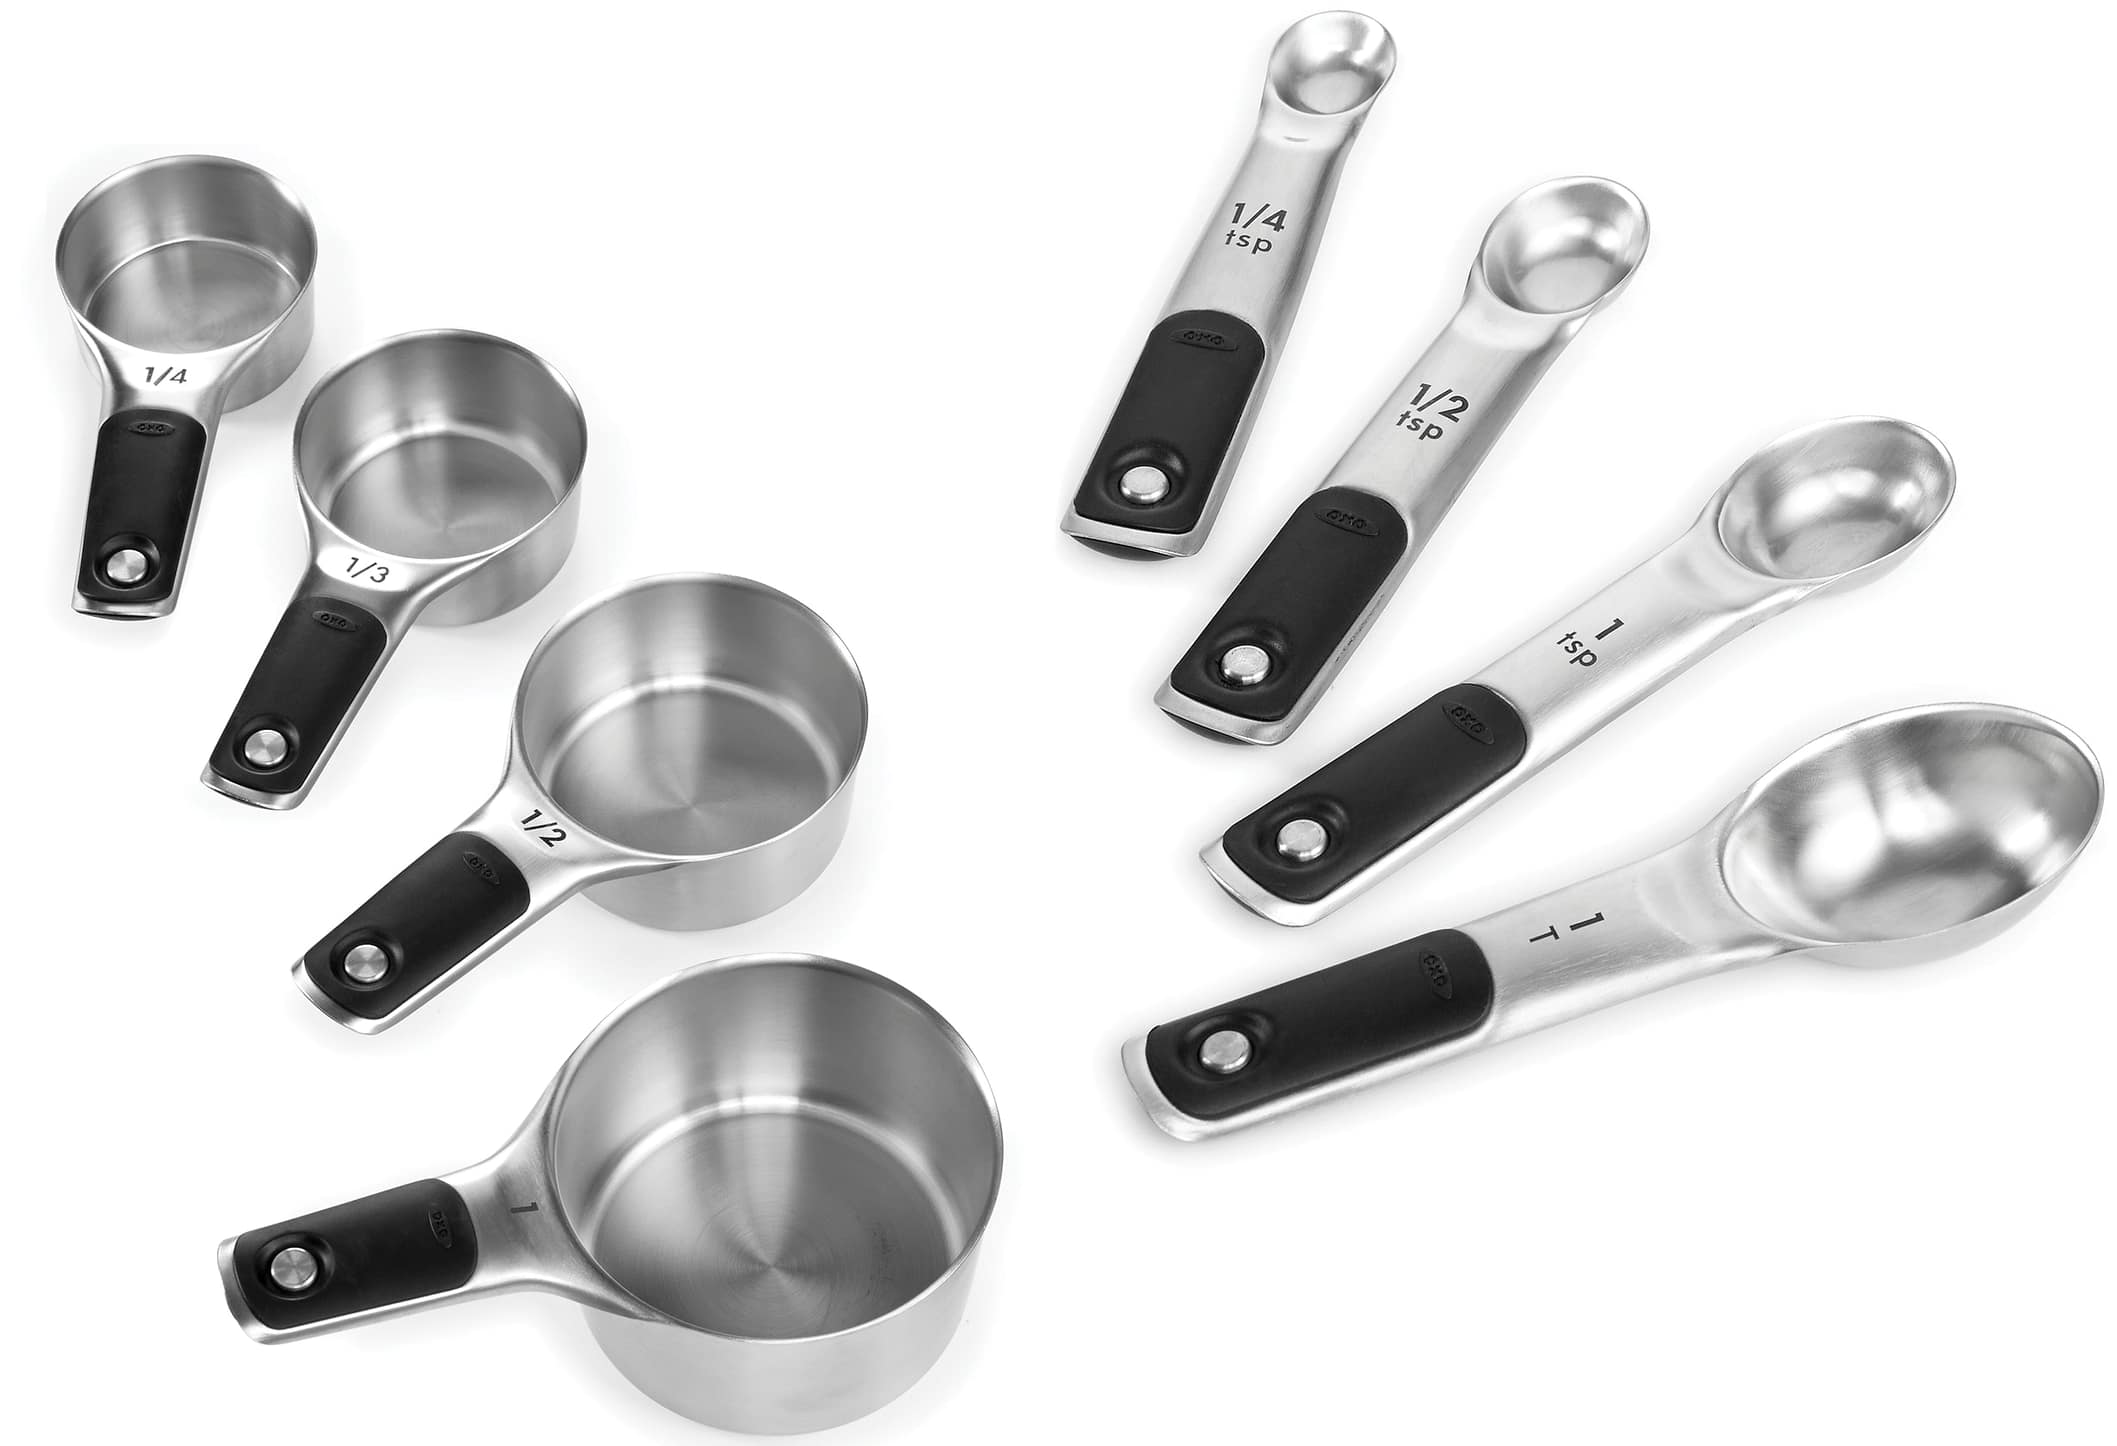 8-Piece OXO Good Grips Stainless Steel Magnetic Measuring Cups/Spoons (4-pc + 4-pc) for $19.98 at Macy's (pick-up in store)